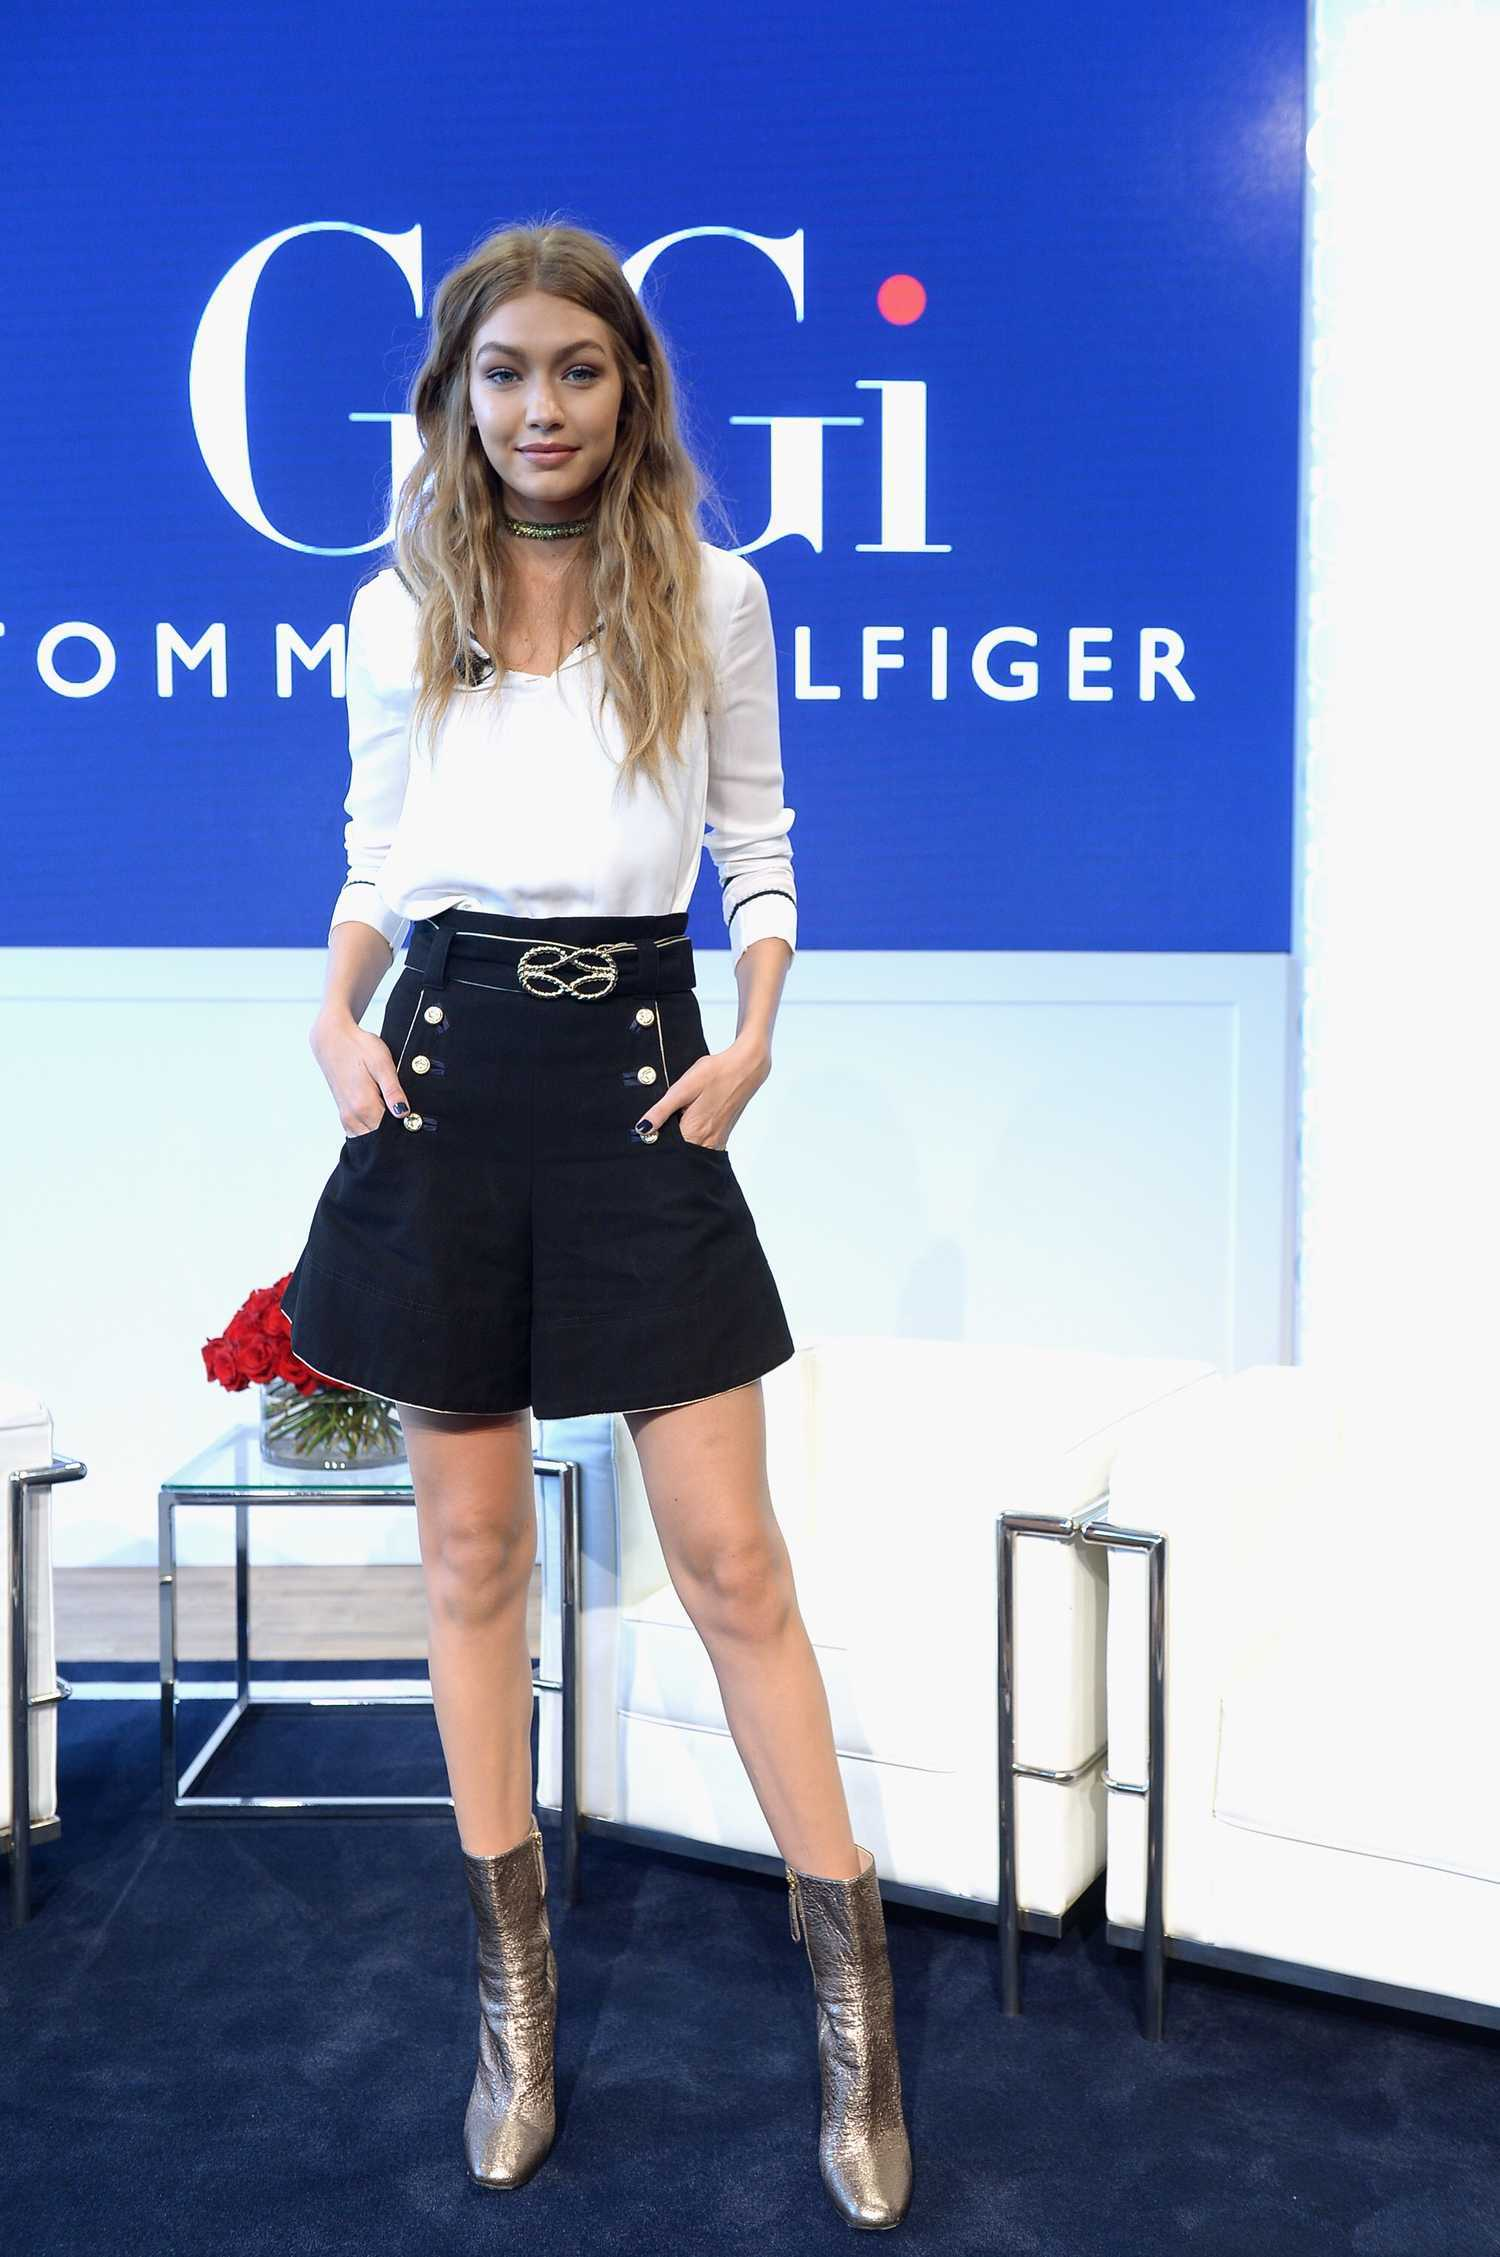 gigi hadid at the tommy x gigi collection press conference in nyc celeb donut. Black Bedroom Furniture Sets. Home Design Ideas